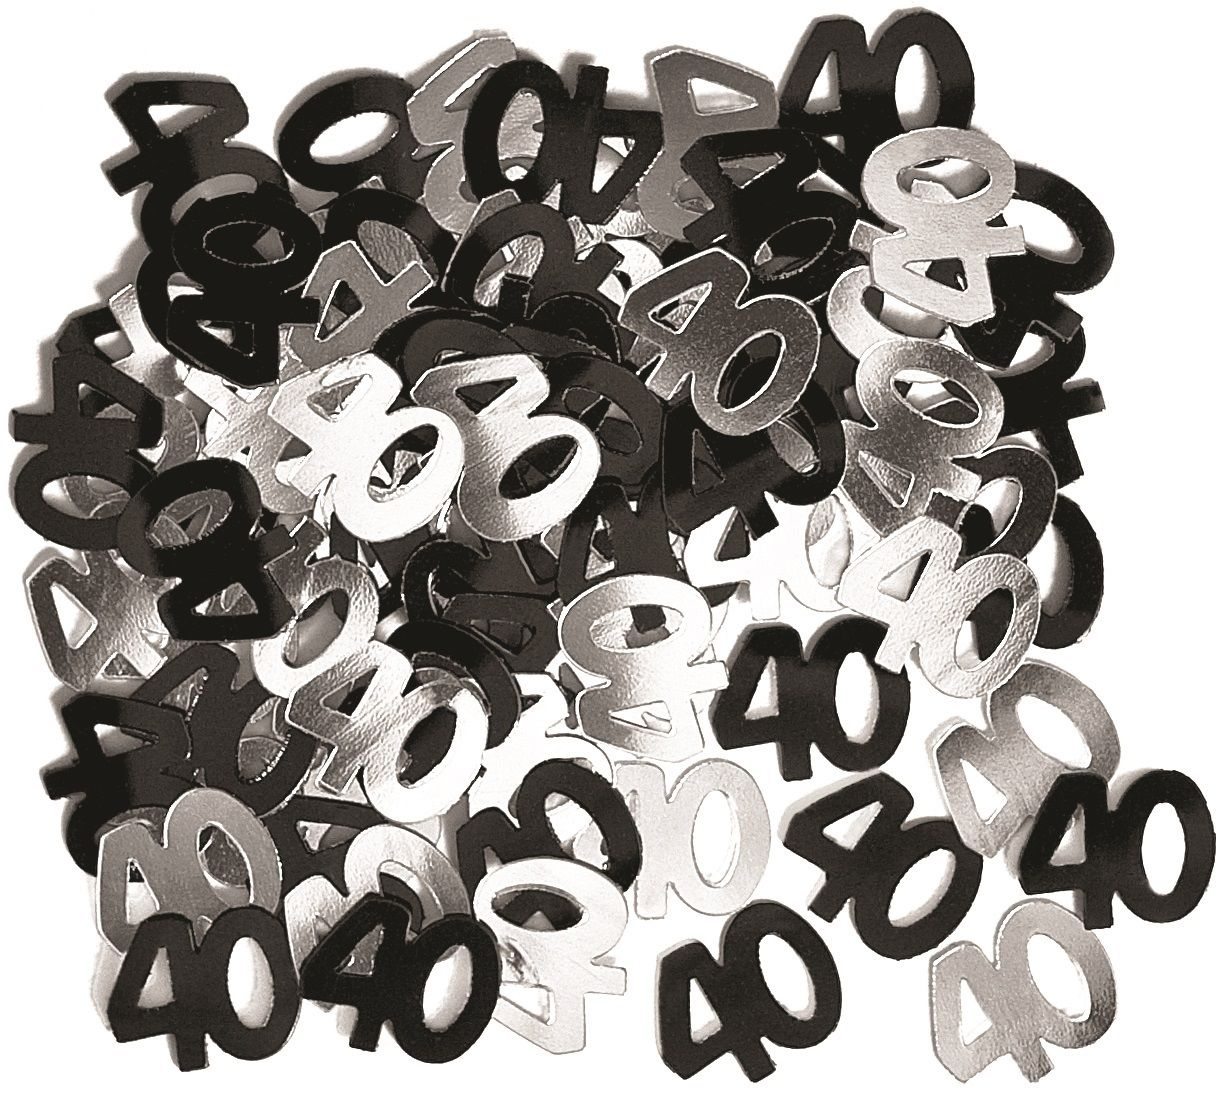 Black Glitz 40th Birthday Confetti 14gms